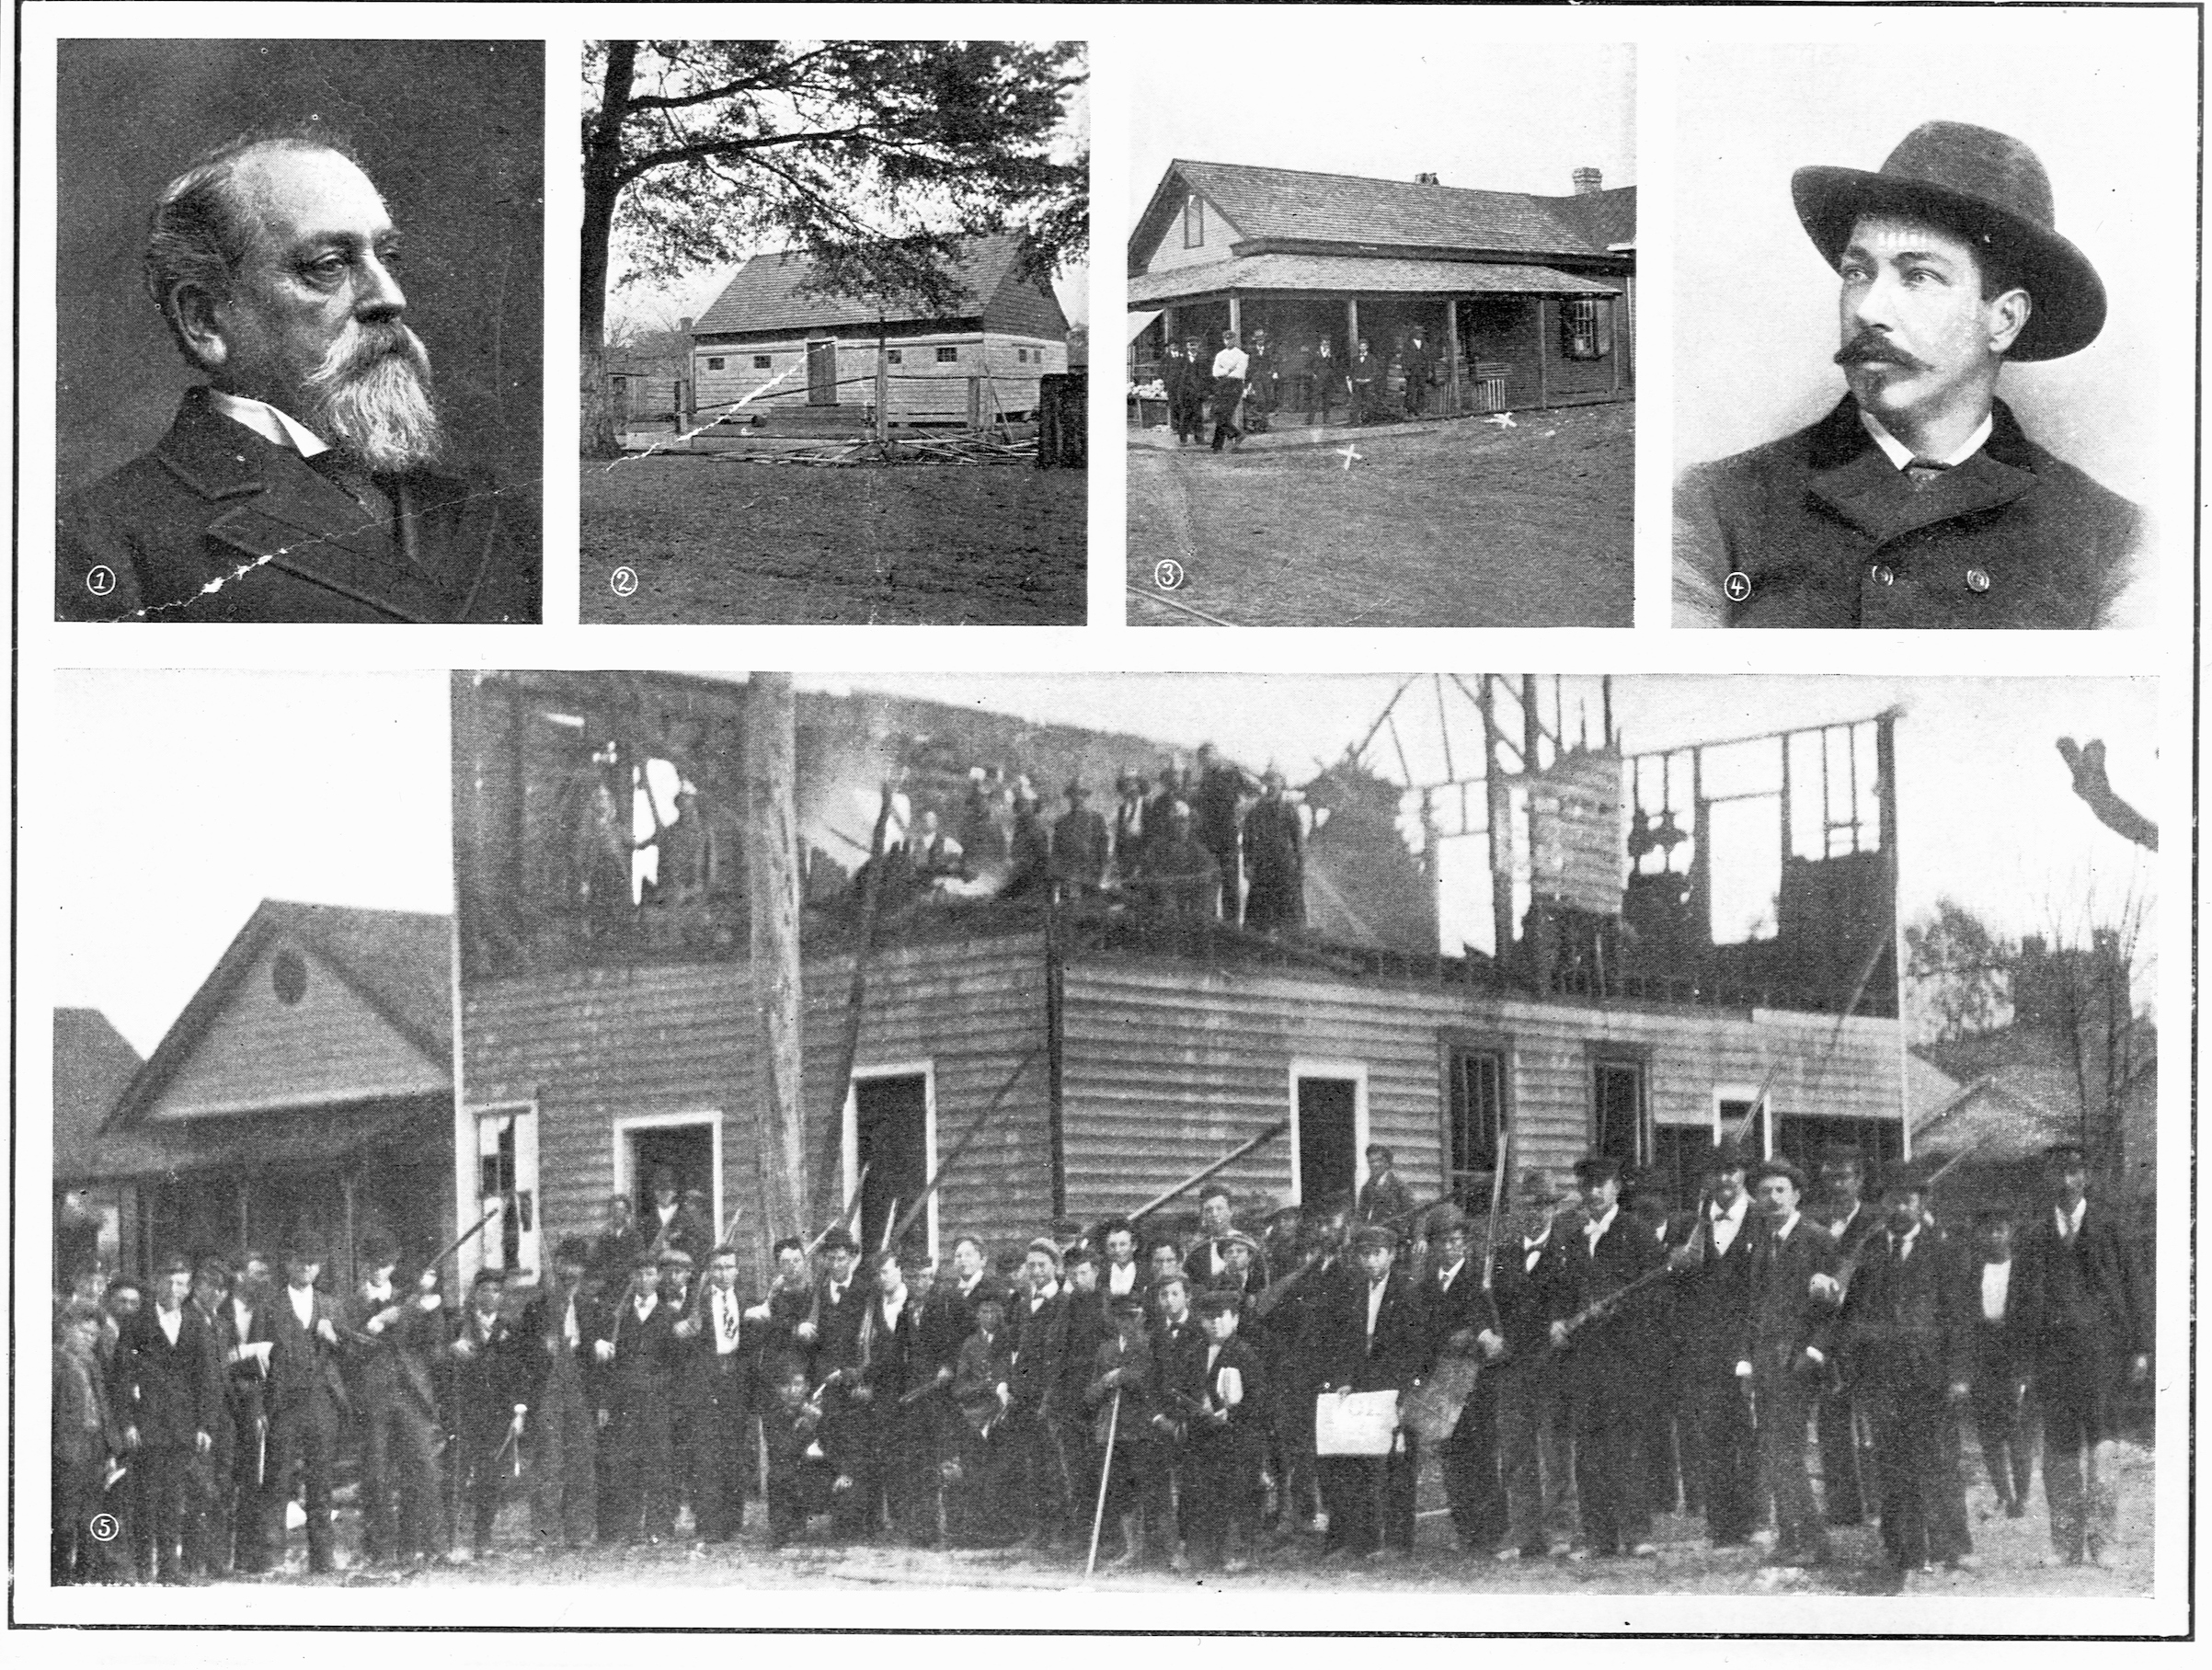 Coup in Wilmington, N.C., 1898: (1) Dr. S.P. Wright, the deposed mayor; (2) Armory, HQ of troops; (3) shanty where shooting took place; (4) Editor A.L. Manley, of the  Record ; (5) Naval reserves and troops escorting Black prisoners to jail